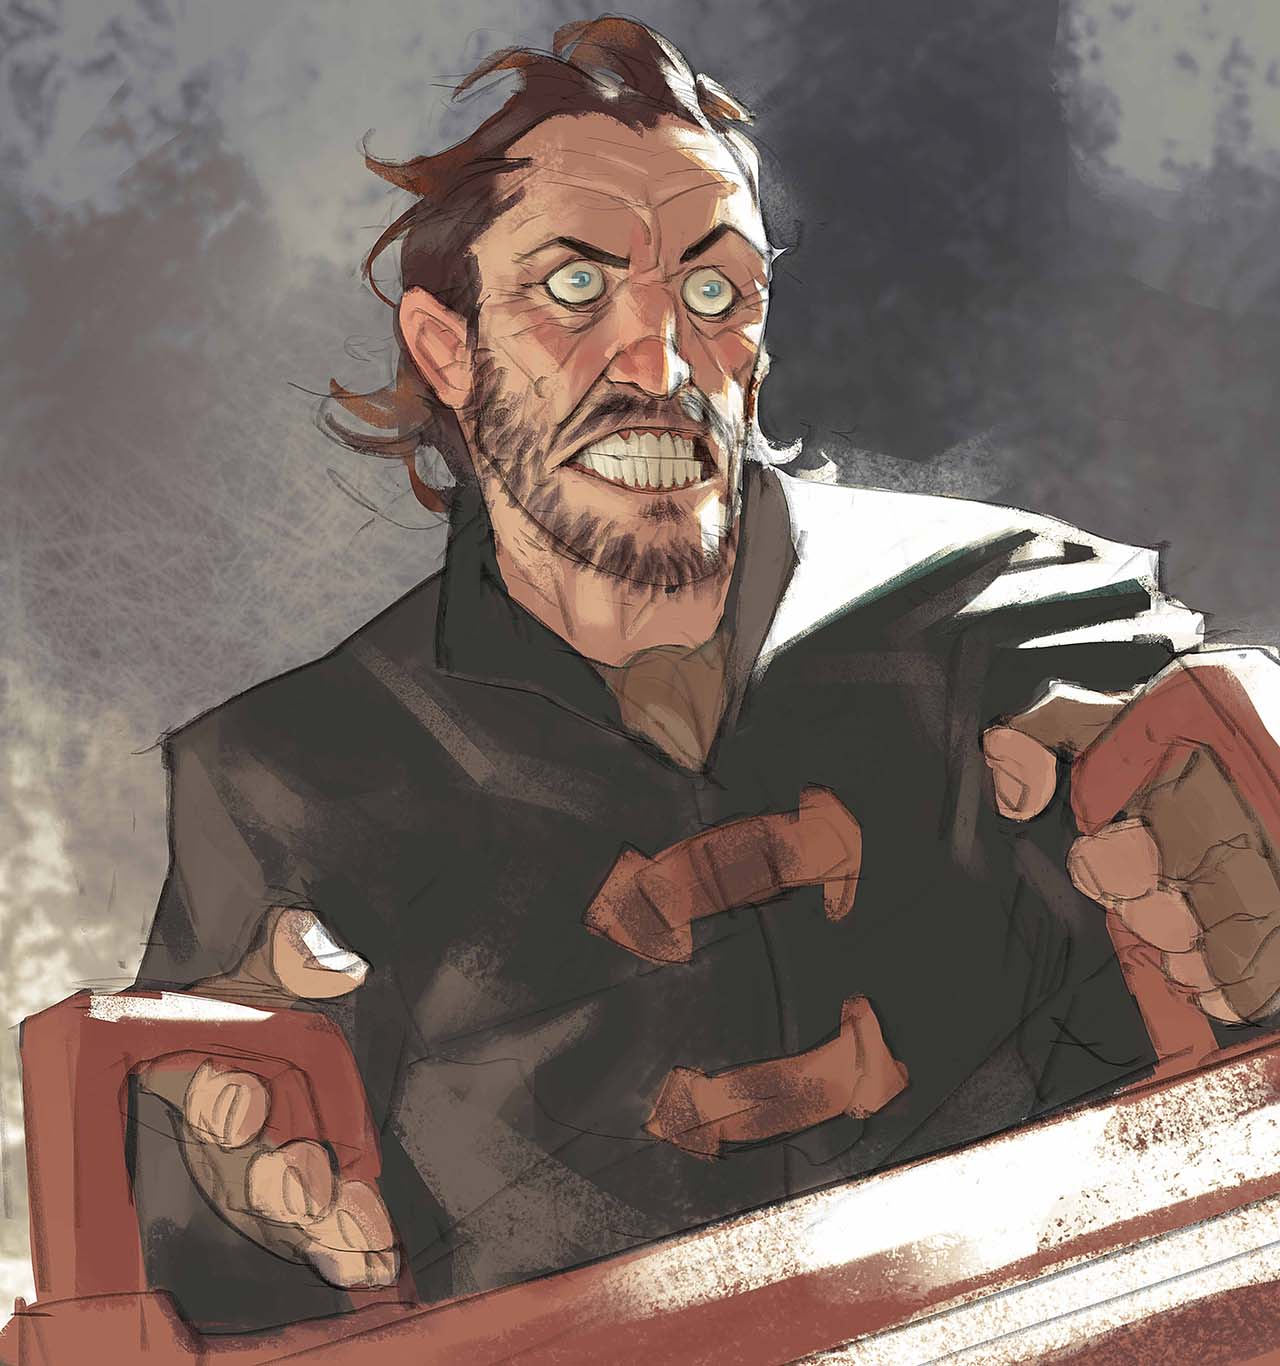 Artist Creates Unique Character Arts From Game Of Thrones – Bronn Character Art By Ramón Nuñez